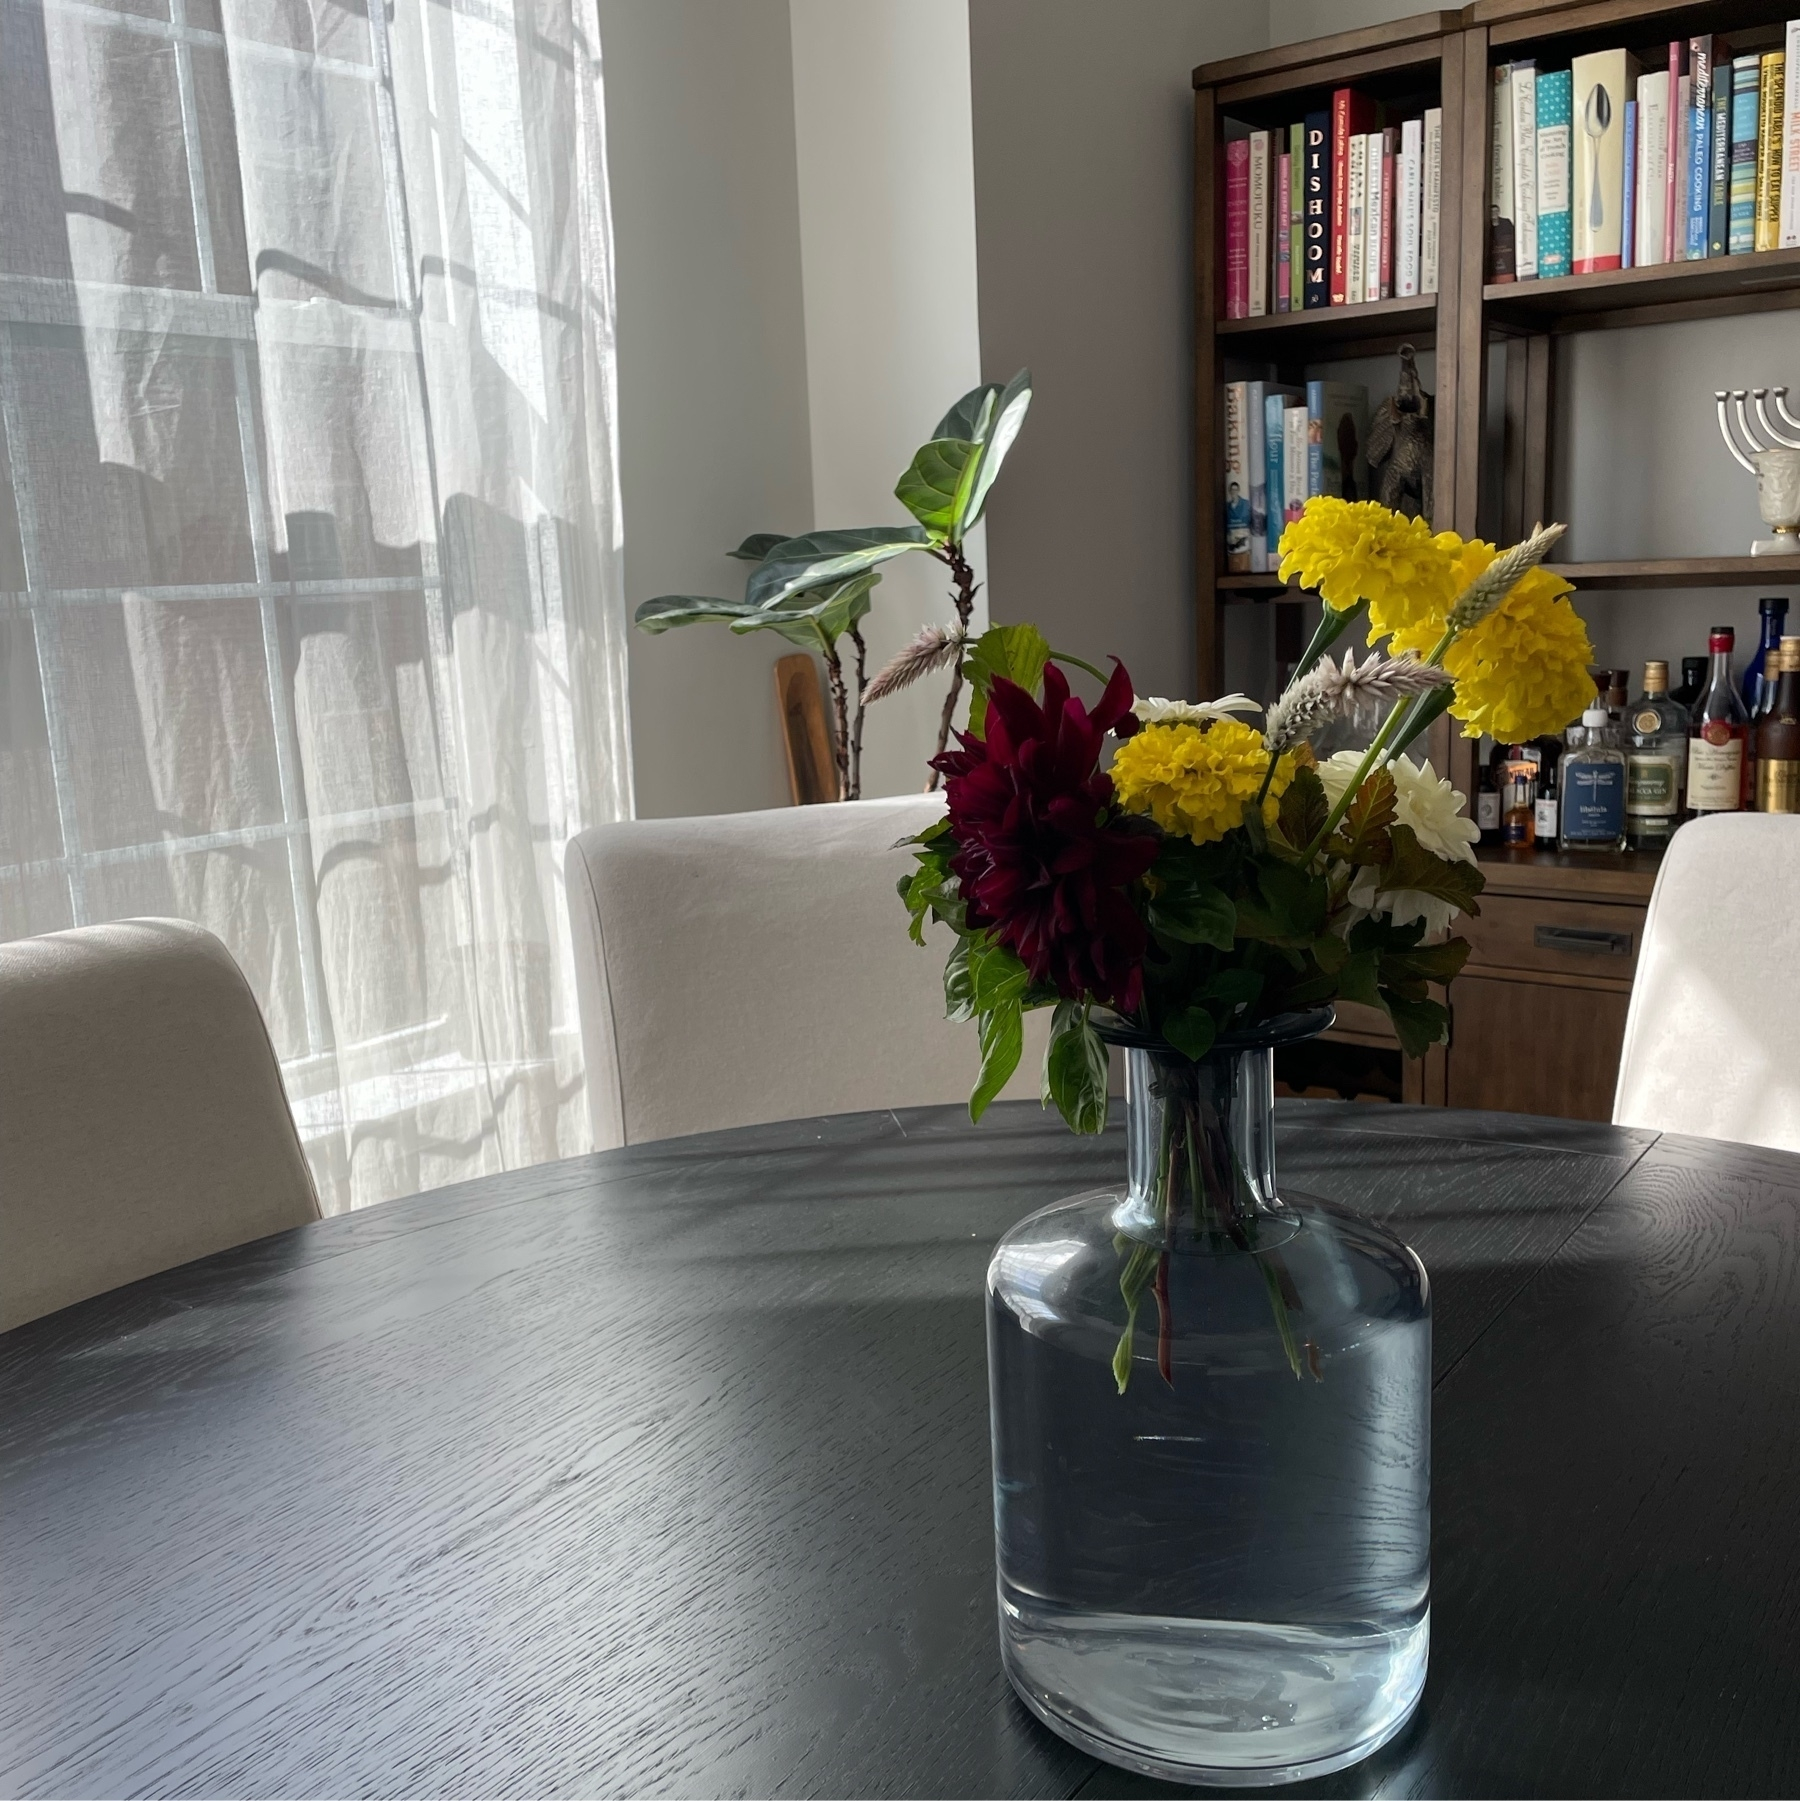 Flowers in a light blue vase on a black table with a window and bar in the background.